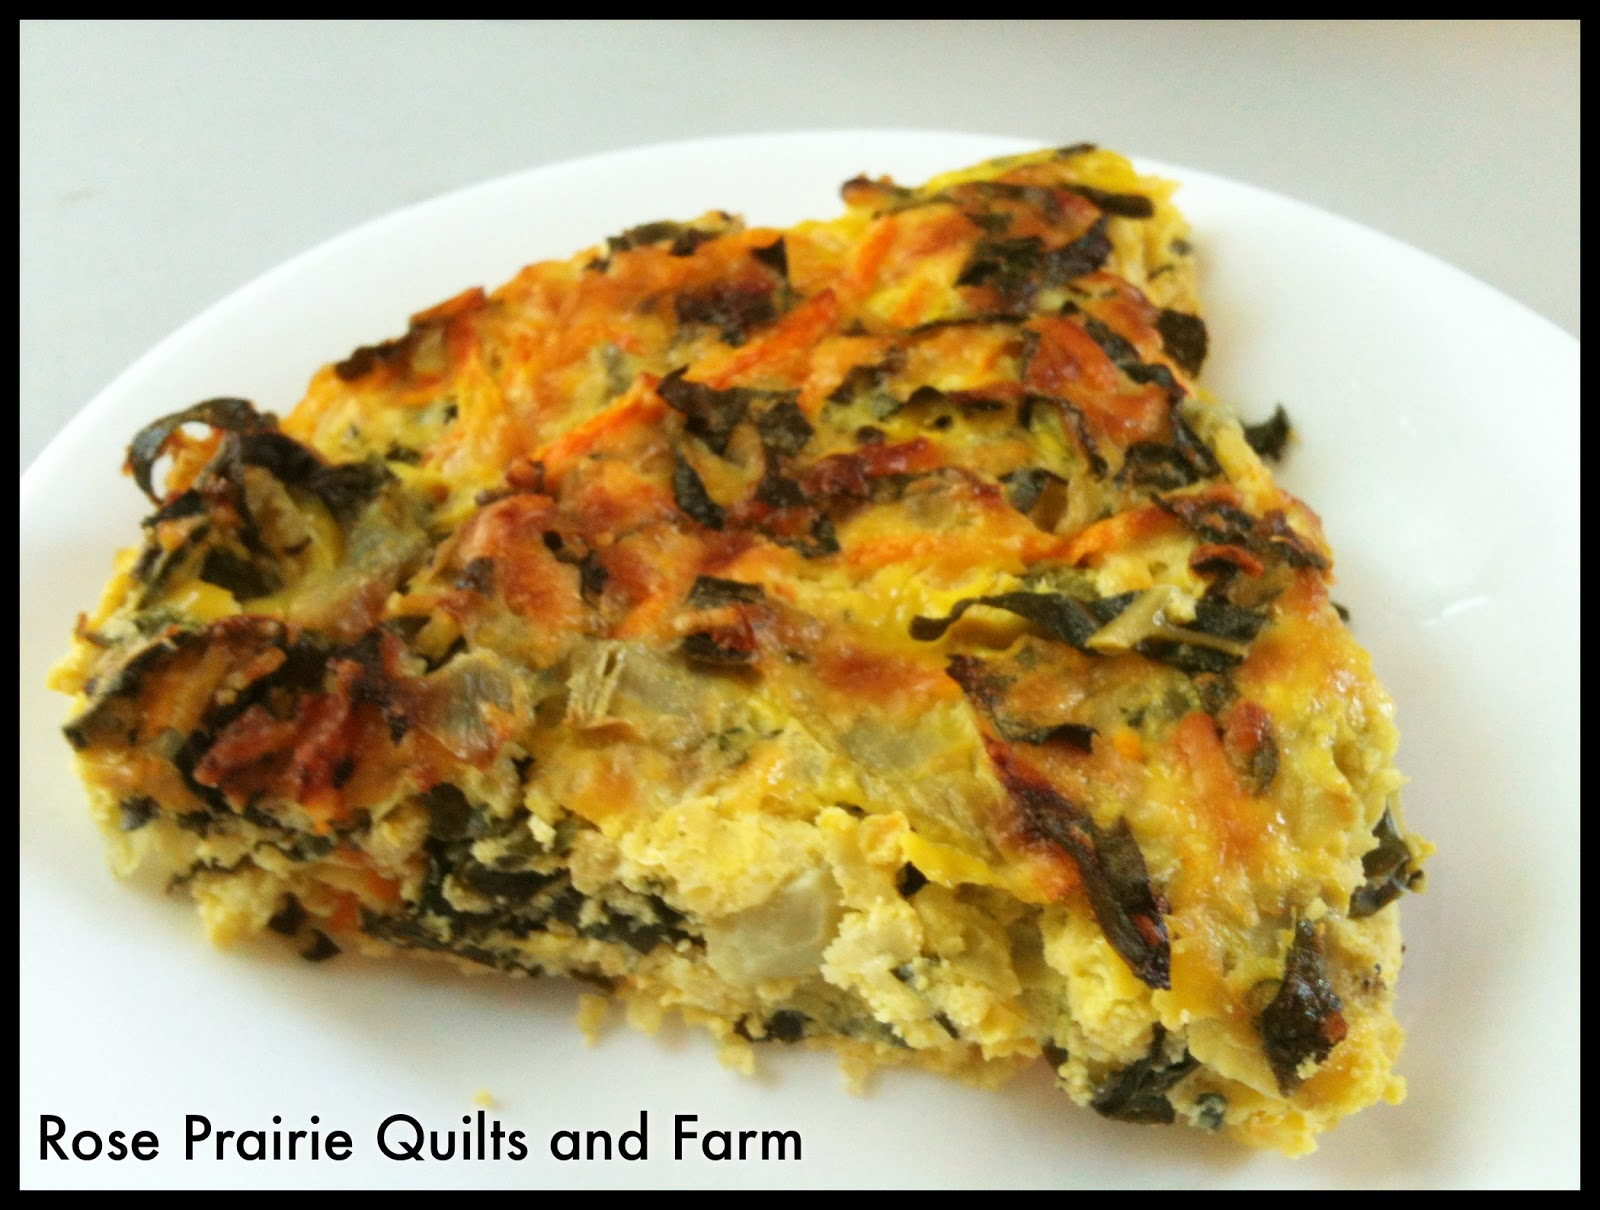 ... Quilts and Farm: Egg Recipe # 31 - Artichoke, Kale & Ricotta Pie